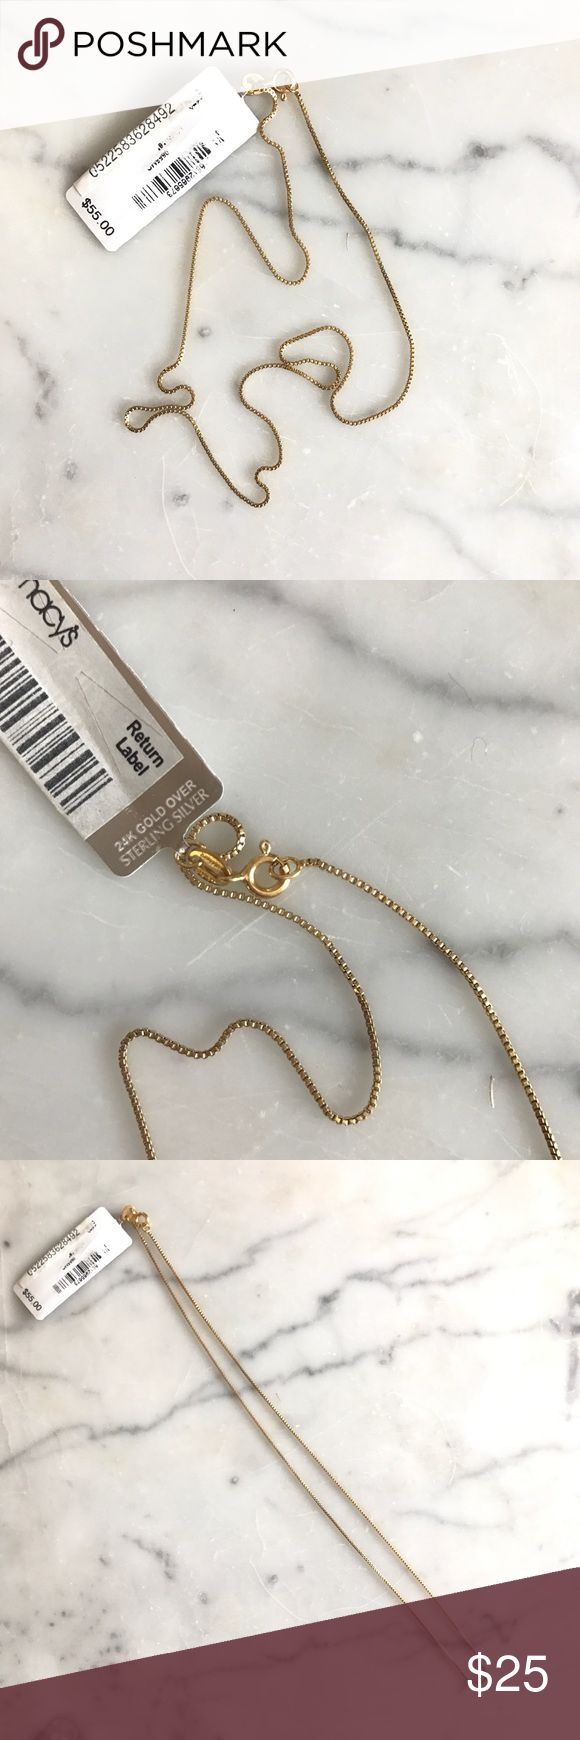 "NWT 24K GOLD chain This NWT 24K gold coated sterling silver chain is 16"" long. It's perfect to add a pendent to or to be worn on its own. Giani Bernini Jewelry Necklaces"